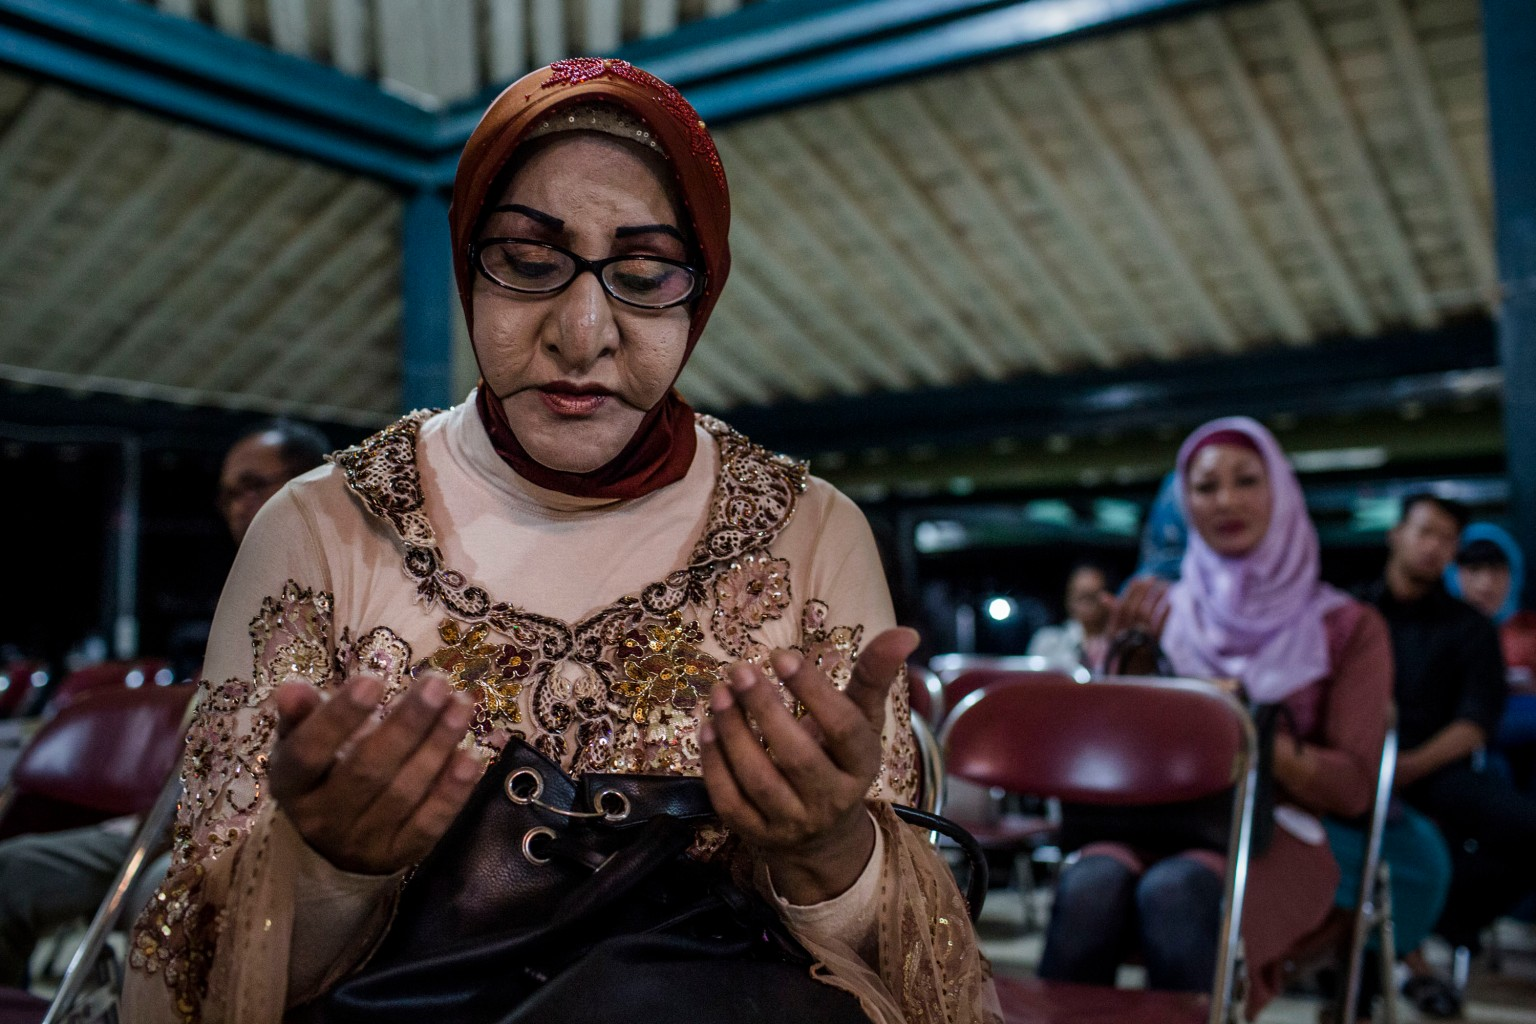 YOGYAKARTA, INDONESIA - AUGUST 12: Shinta Ratri, a leader of a Pesantren boarding school, Al-Fatah, for transgender people known as 'waria' prays during Syawalan tradition on August 12, 2015 in Yogyakarta, Indonesia. Syawalan tradition is recognized by the Javanese community as a part of religious traditions as celebrates after the Eid al-Fitr, as all sins forgiven to get back into the pure and clean. During the Syawalan tradition the 'waria' community gather to celebrates. 'Waria' is a term derived from the words 'wanita' (woman) and 'pria' (man). The Koran school Al-Fatah was set back last year's by Shinta Ratri at her house as a place for waria to pray, after their first founder Maryani died. The school operates every Sunday. Islam strictly segregates men from women when praying, leaving no-where for 'the third sex' waria to pray before now. (Photo by Ulet Ifansasti/Getty Images)